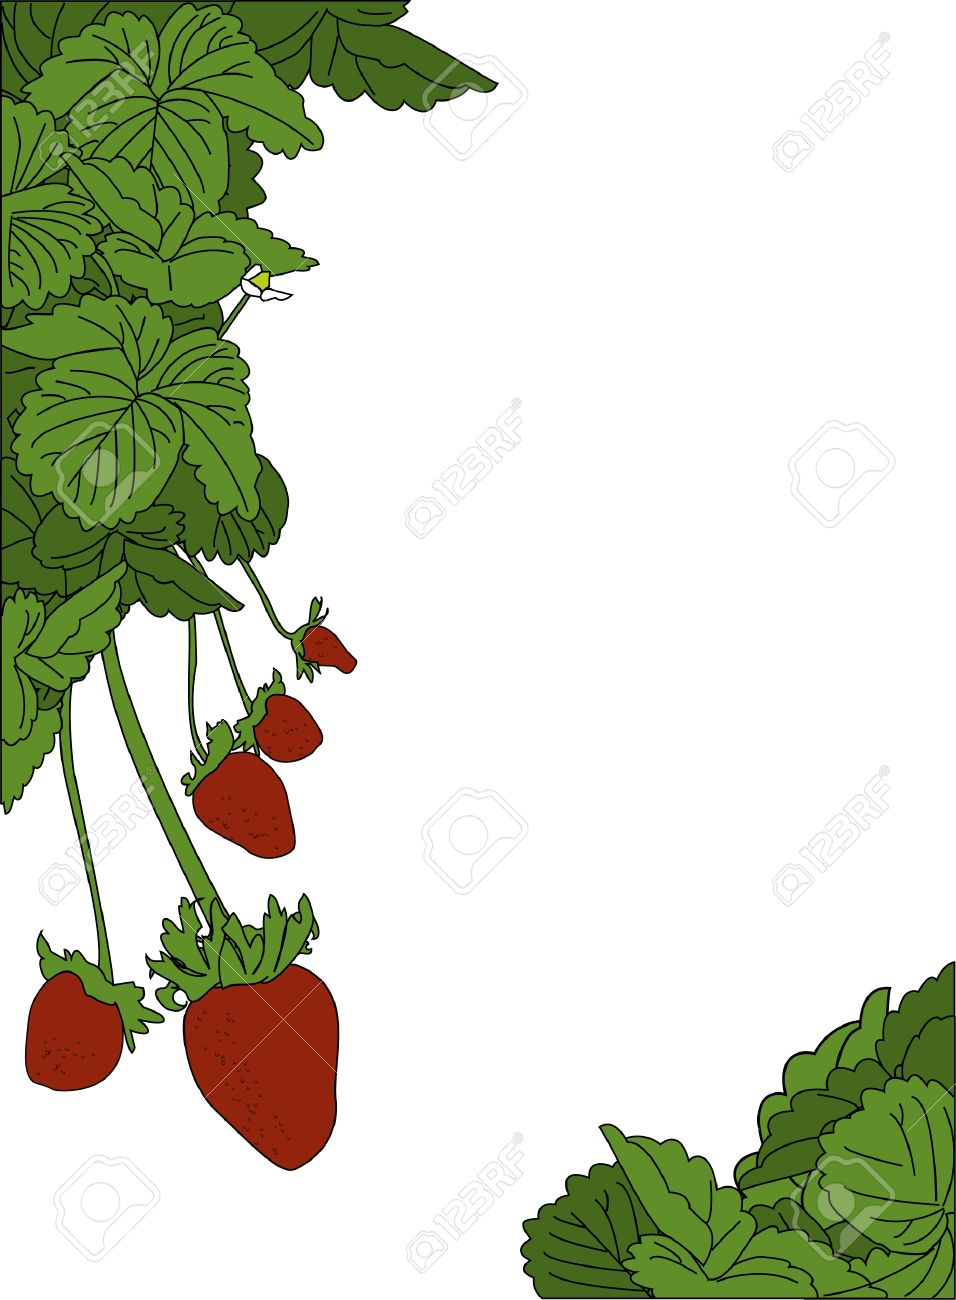 a strawberry plant page border design royalty free cliparts